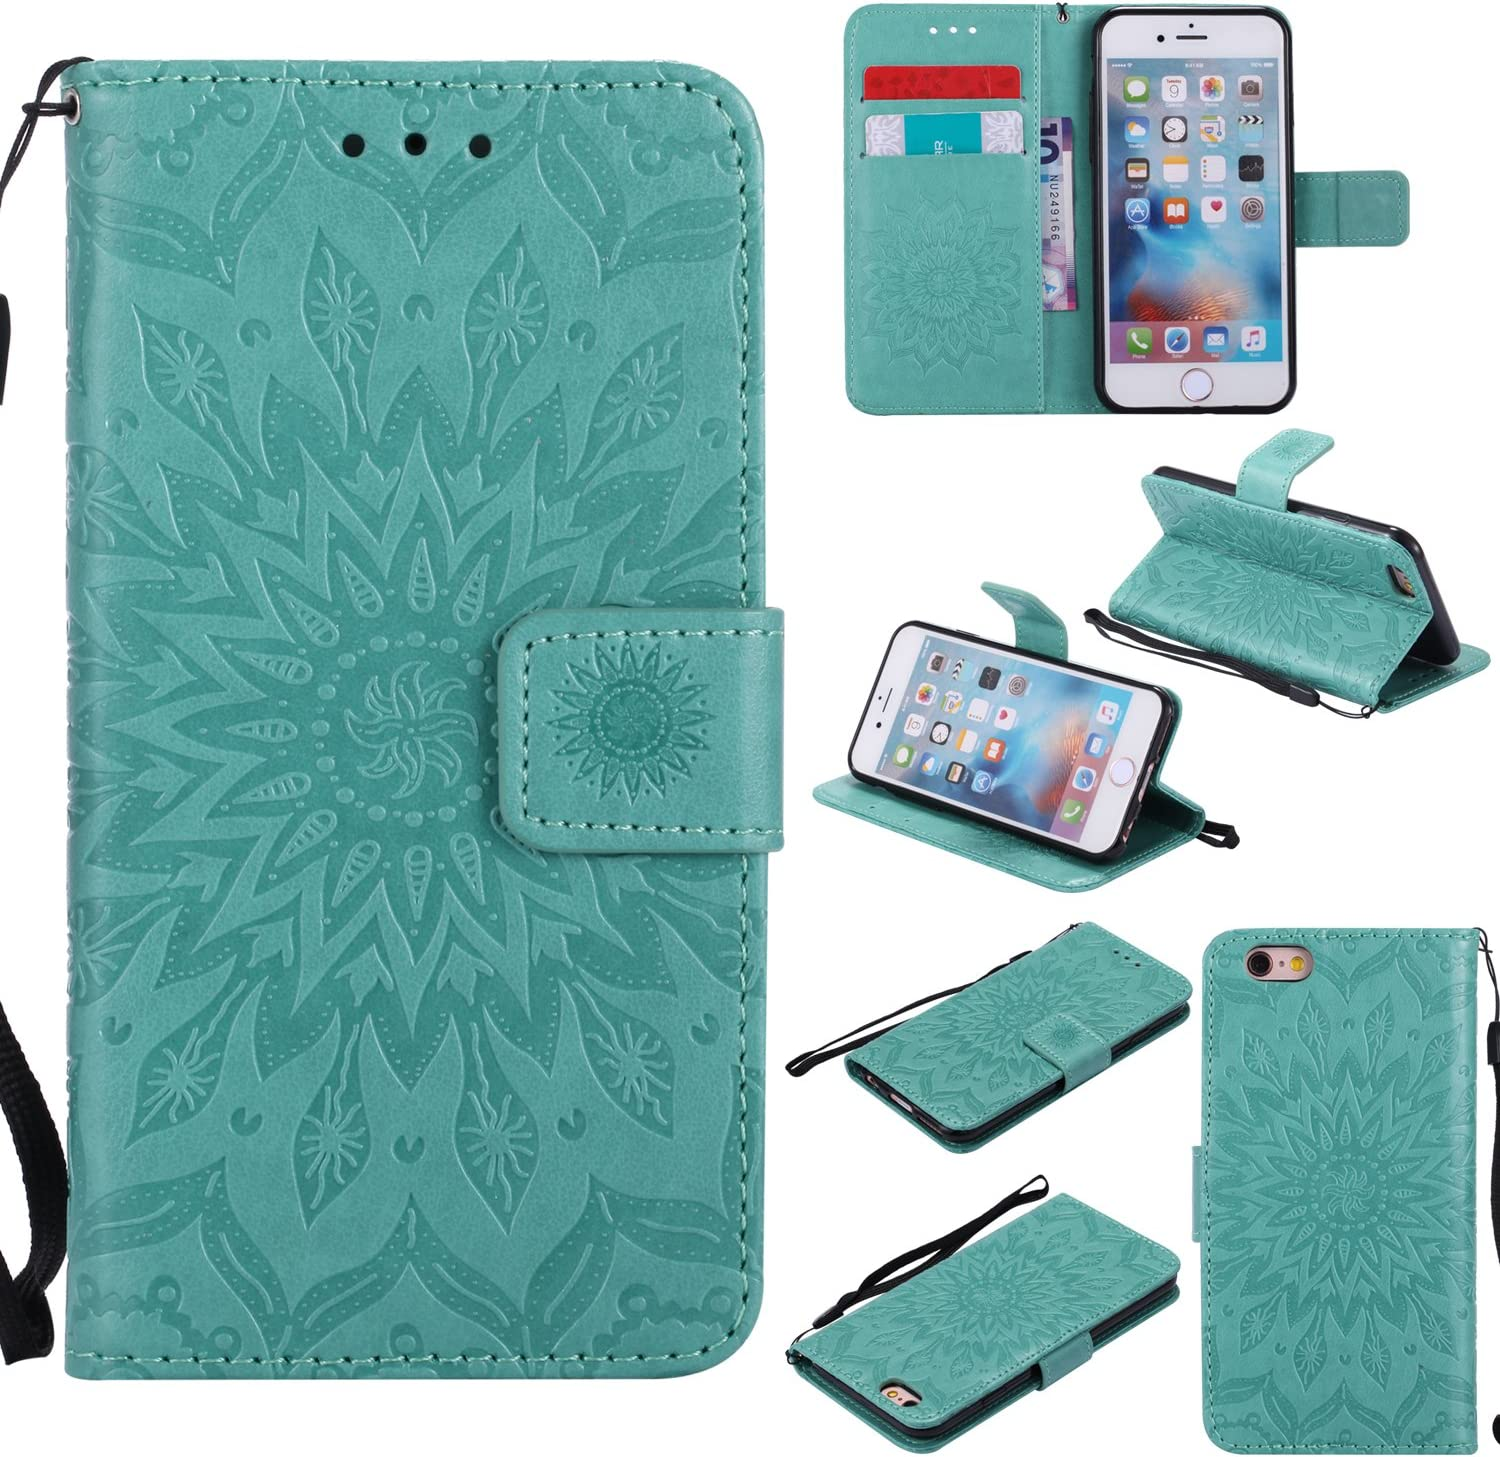 A-slim iPhone 6 / 6S Wallet Case, (TM) Sun Pattern Embossed PU Leather Magnetic Flip Cover Card Holders & Hand Strap Wallet Purse Case for iPhone 6 / 6S [4.7 Inch] - Green